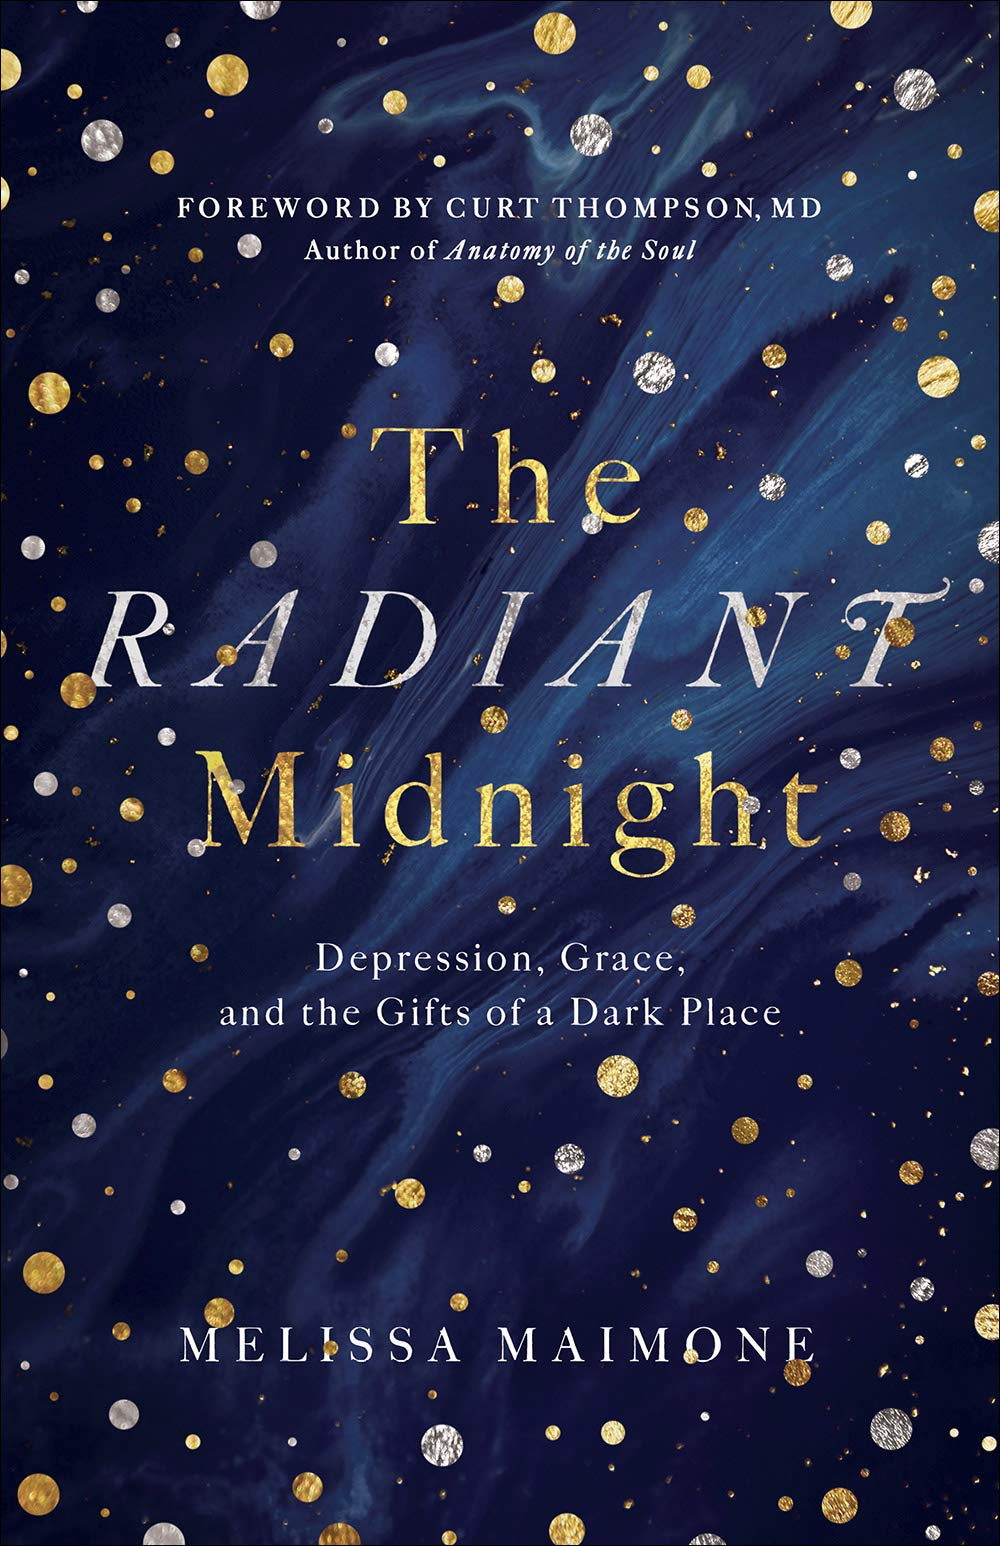 Radiant Midnight Depression Grace Gifts